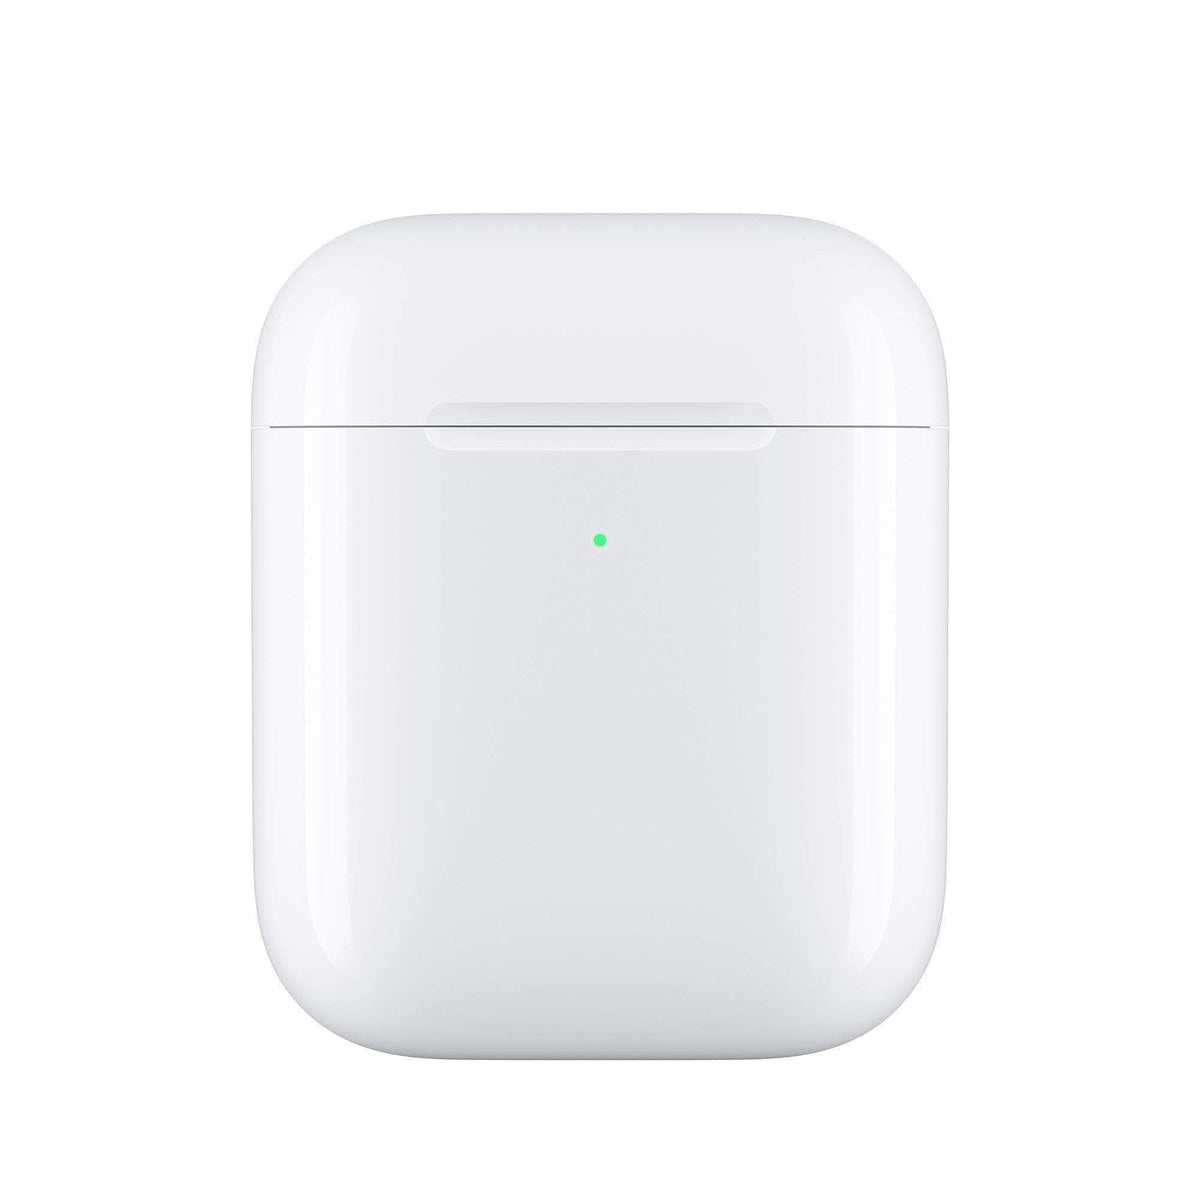 Airpods Wireless Charging Case - White - WHITE - Earphone Accessories - Deal Builder